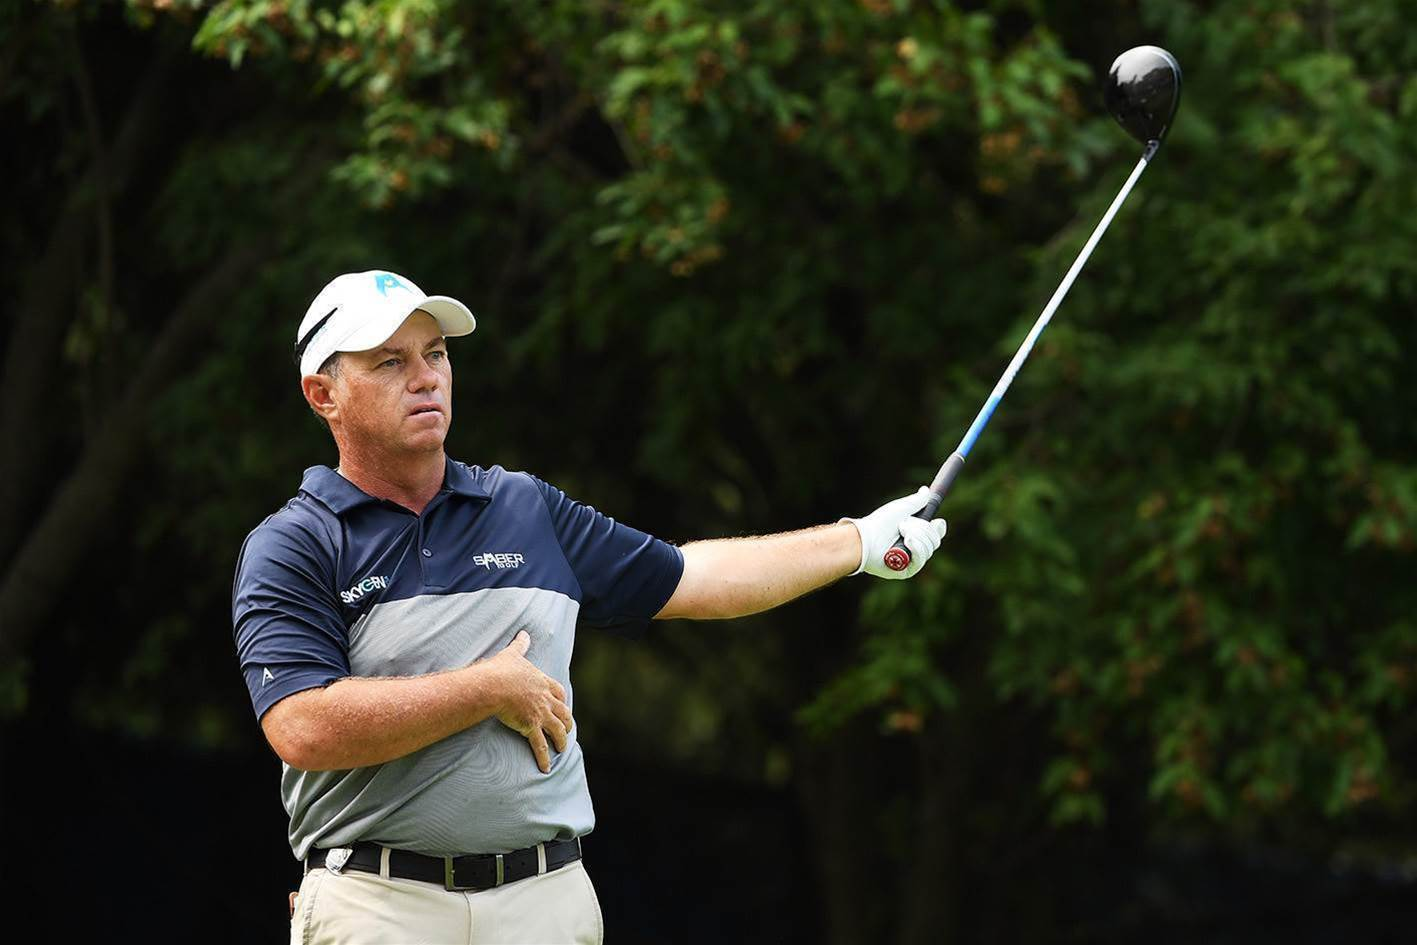 Lyle Inspires Fowler And Aussies At Pgagolf Site Bad Boy Buggy Ambush Wiring Diagram American Based Australian Club Pro Craig Hocknull Opened With A Solid 72 Photo Getty Images